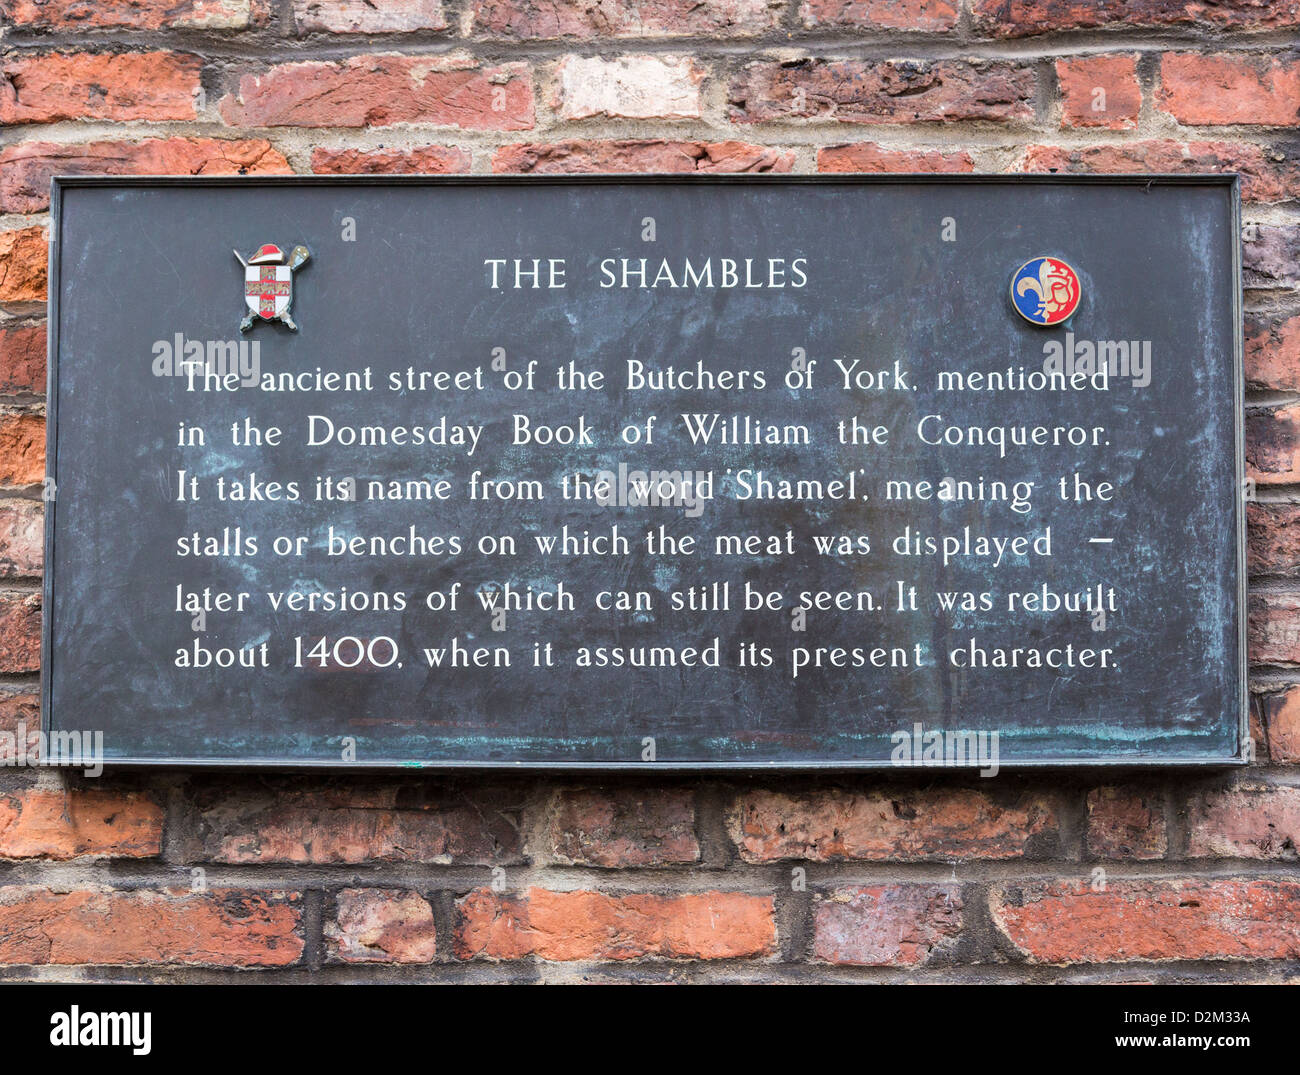 The Shambles sign and description, York - Stock Image